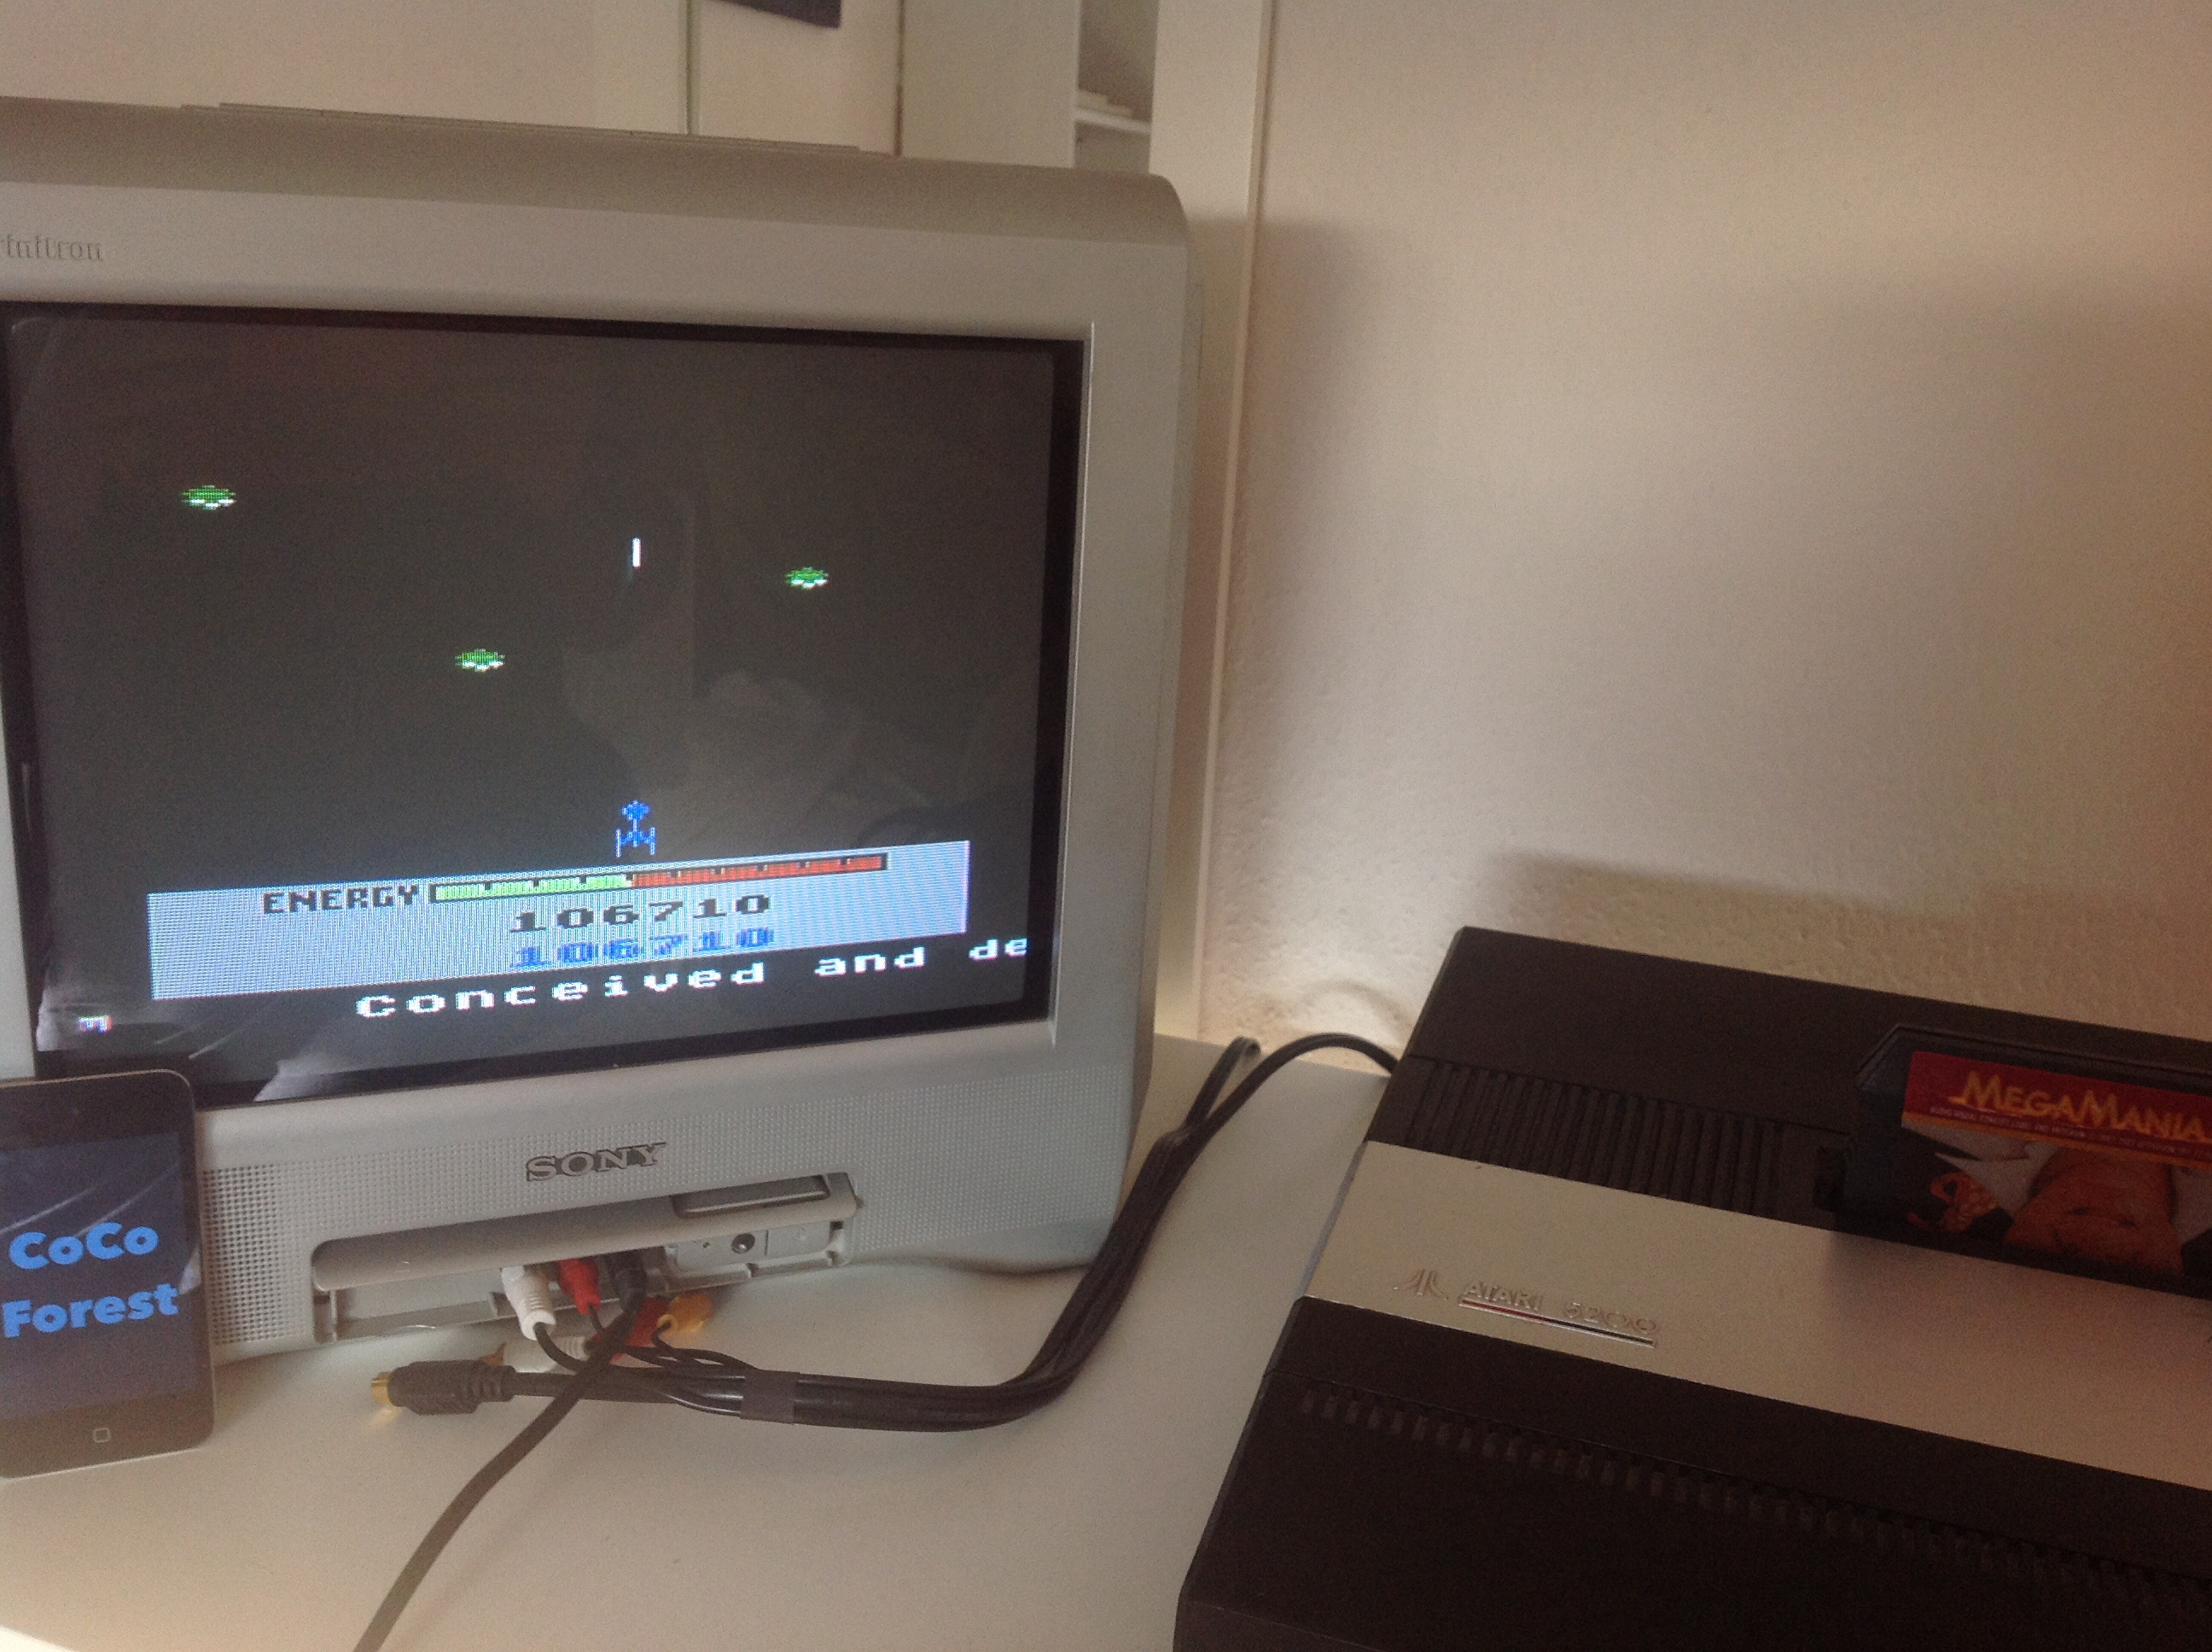 CoCoForest: Megamania [Guided Missiles] (Atari 5200) 106,710 points on 2015-01-15 08:11:22